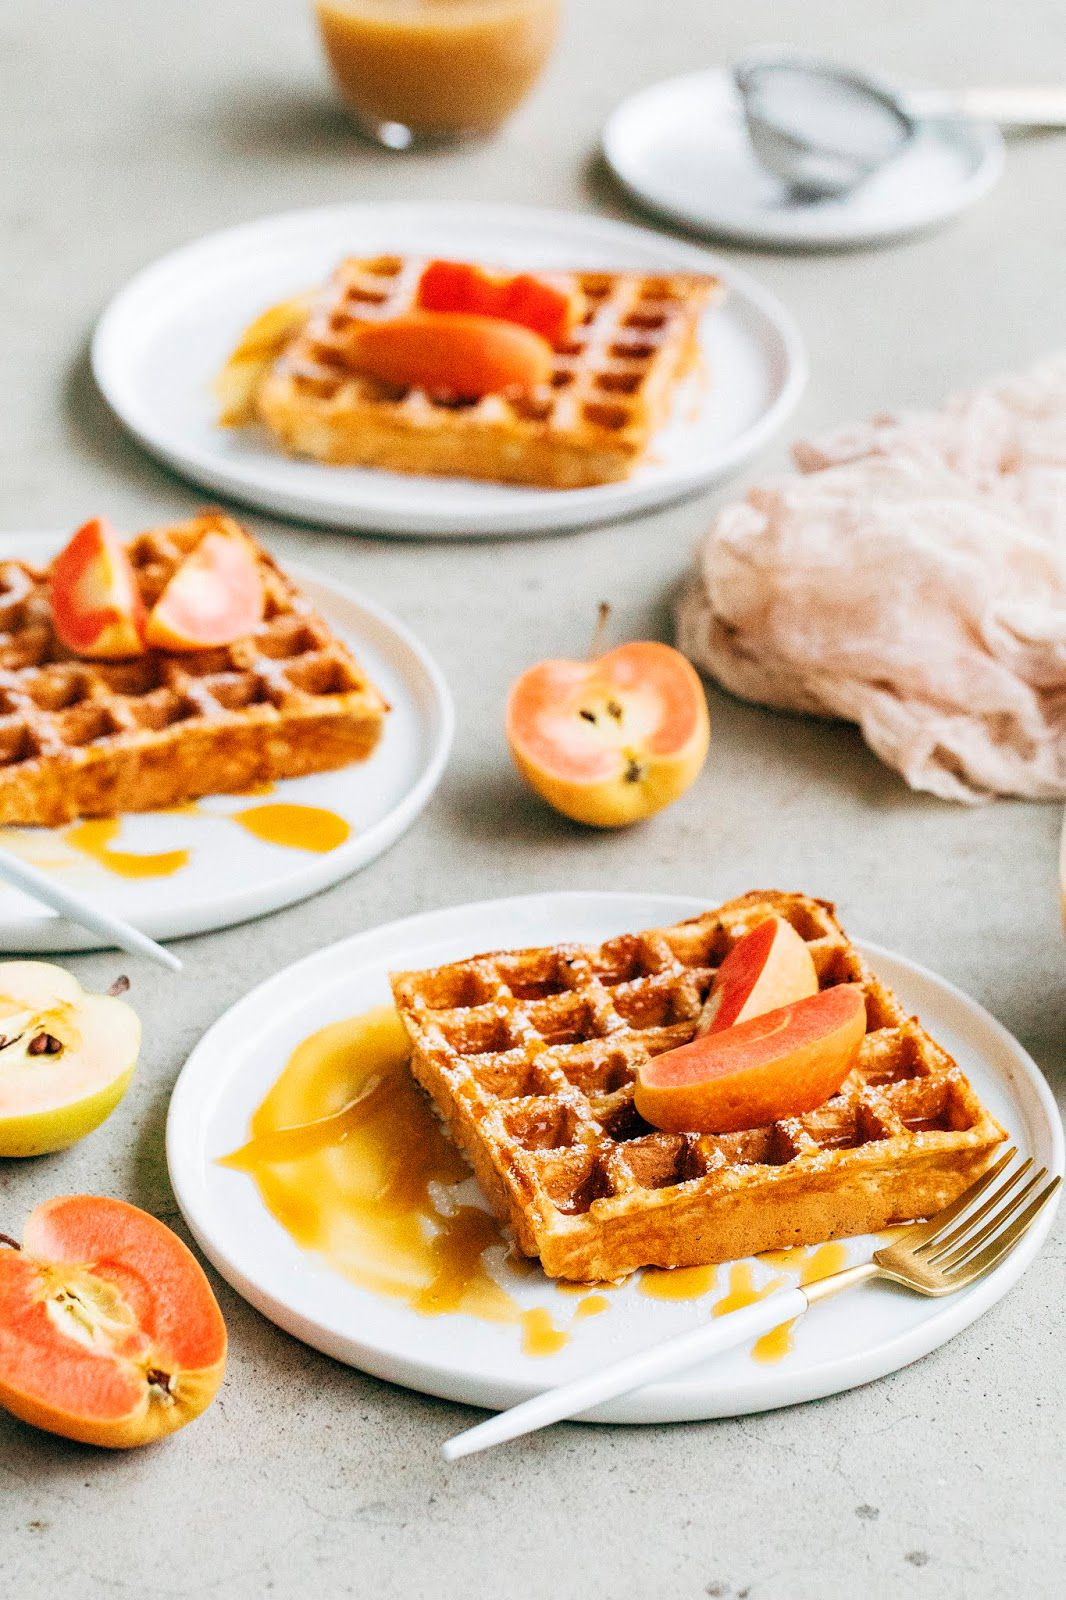 12 Unique Waffle Recipes Worthy of a Weekend Brunch Party